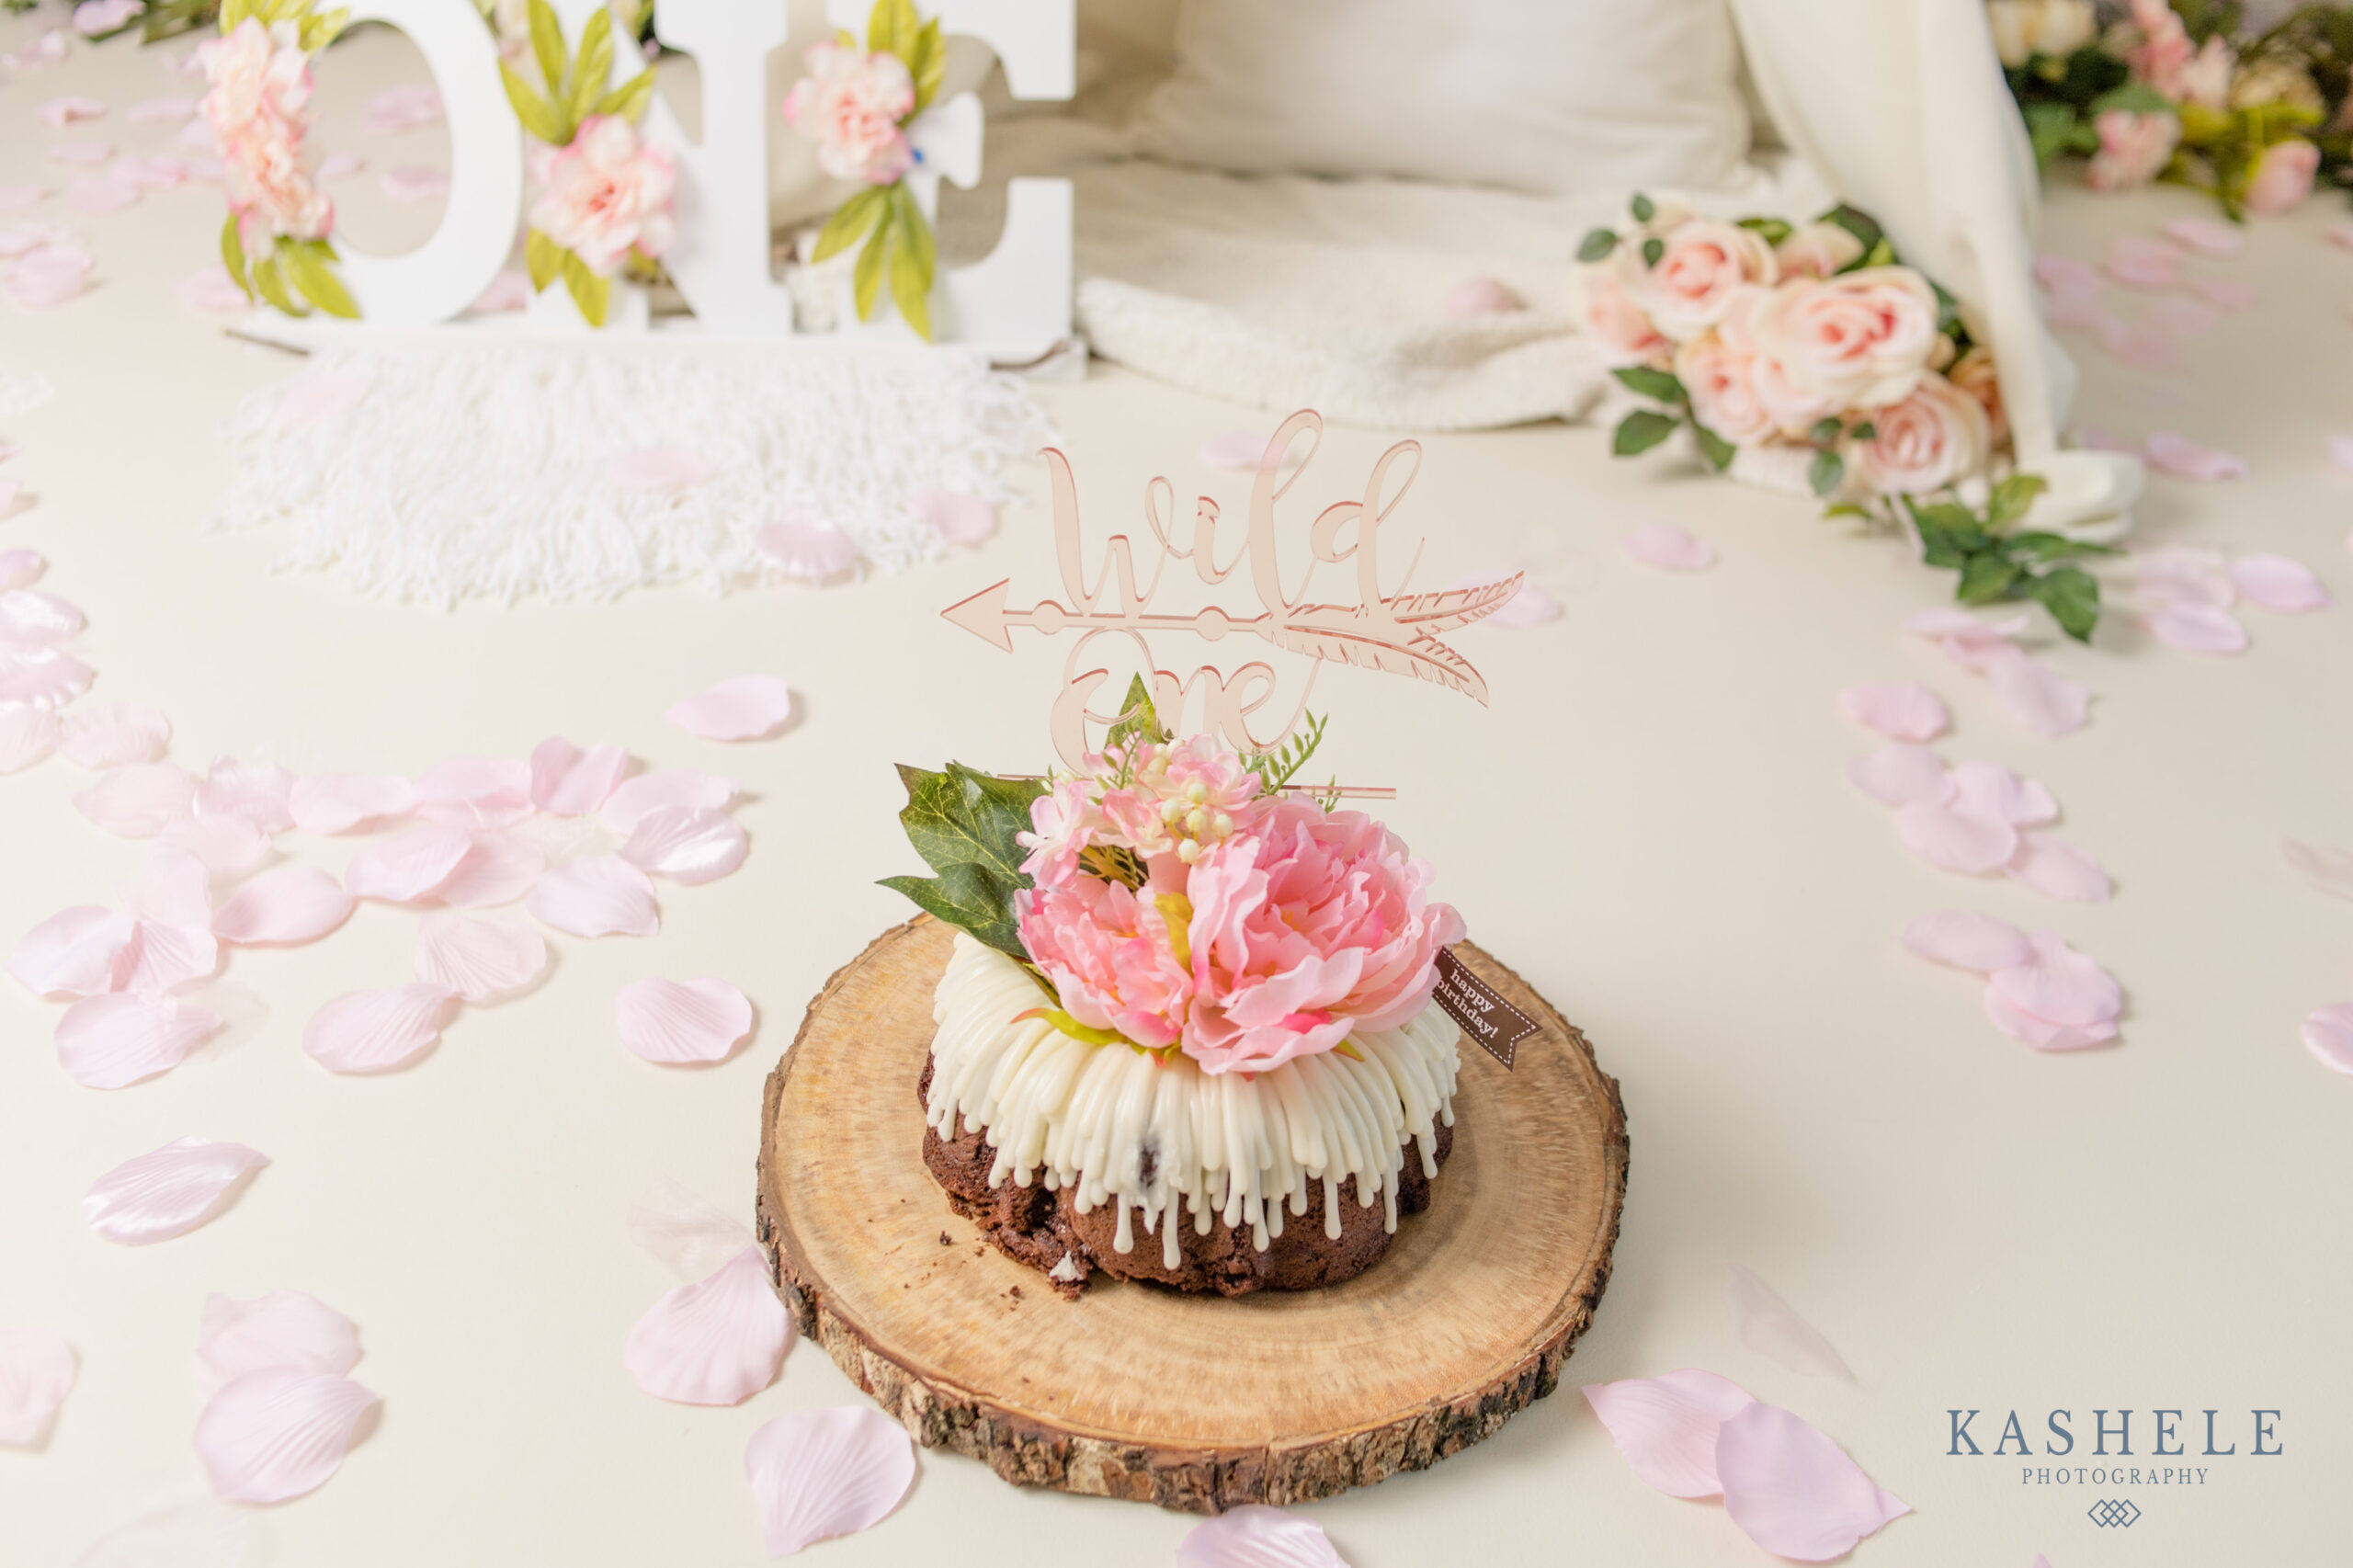 product photo of an acrylic wild one cake topper